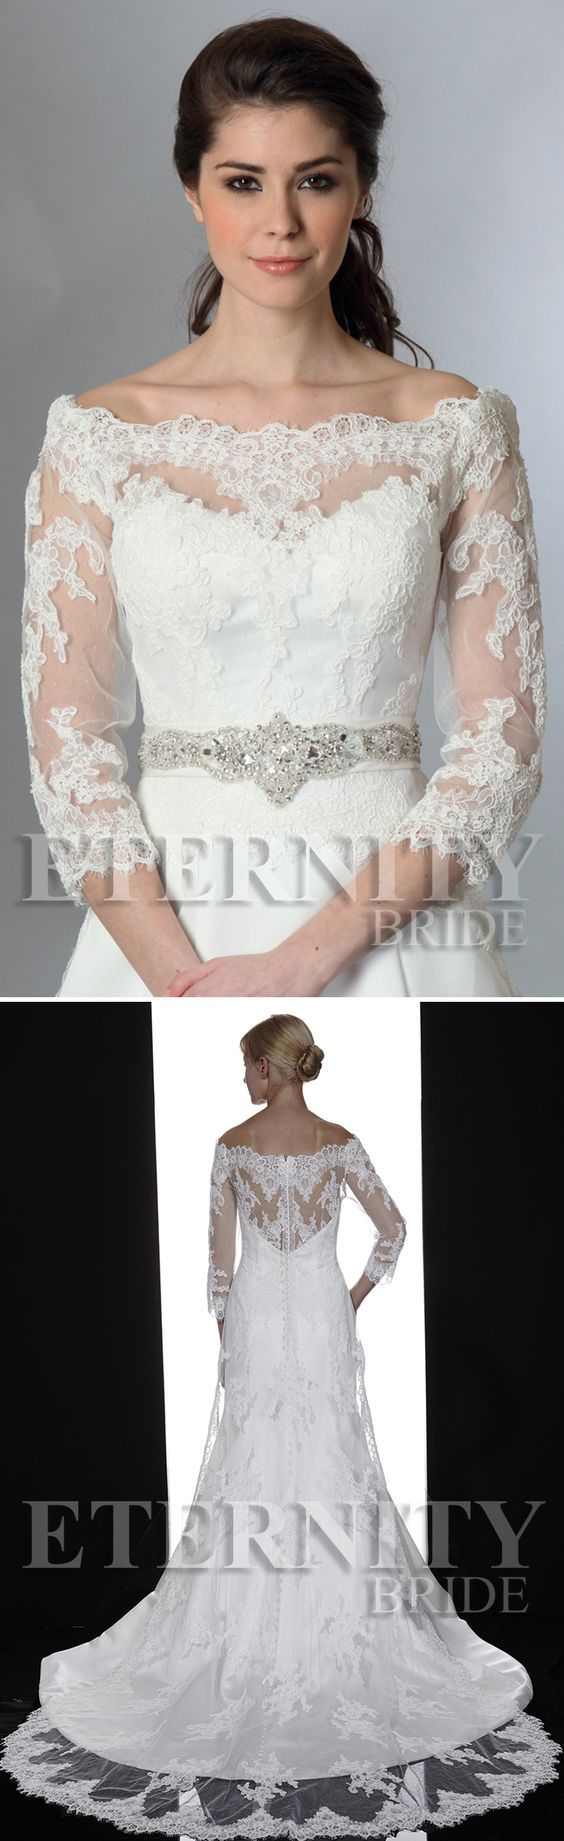 J057 bridal jacket from Eternity Bride and Art Couture